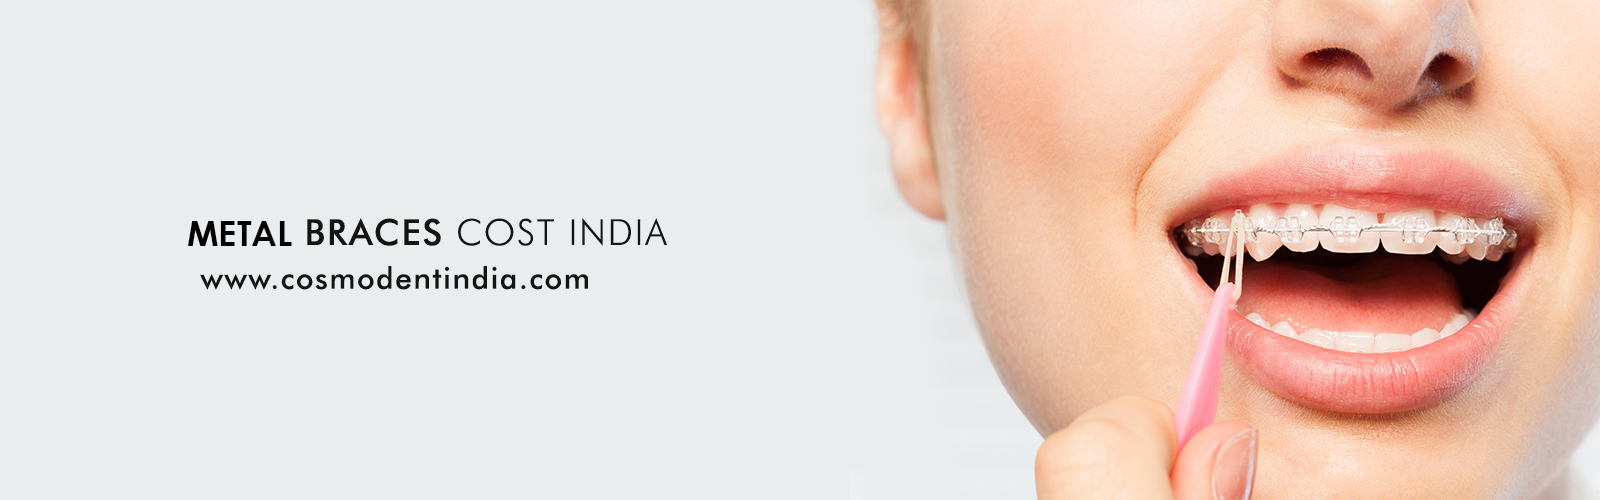 metal-braces-cost-in-india